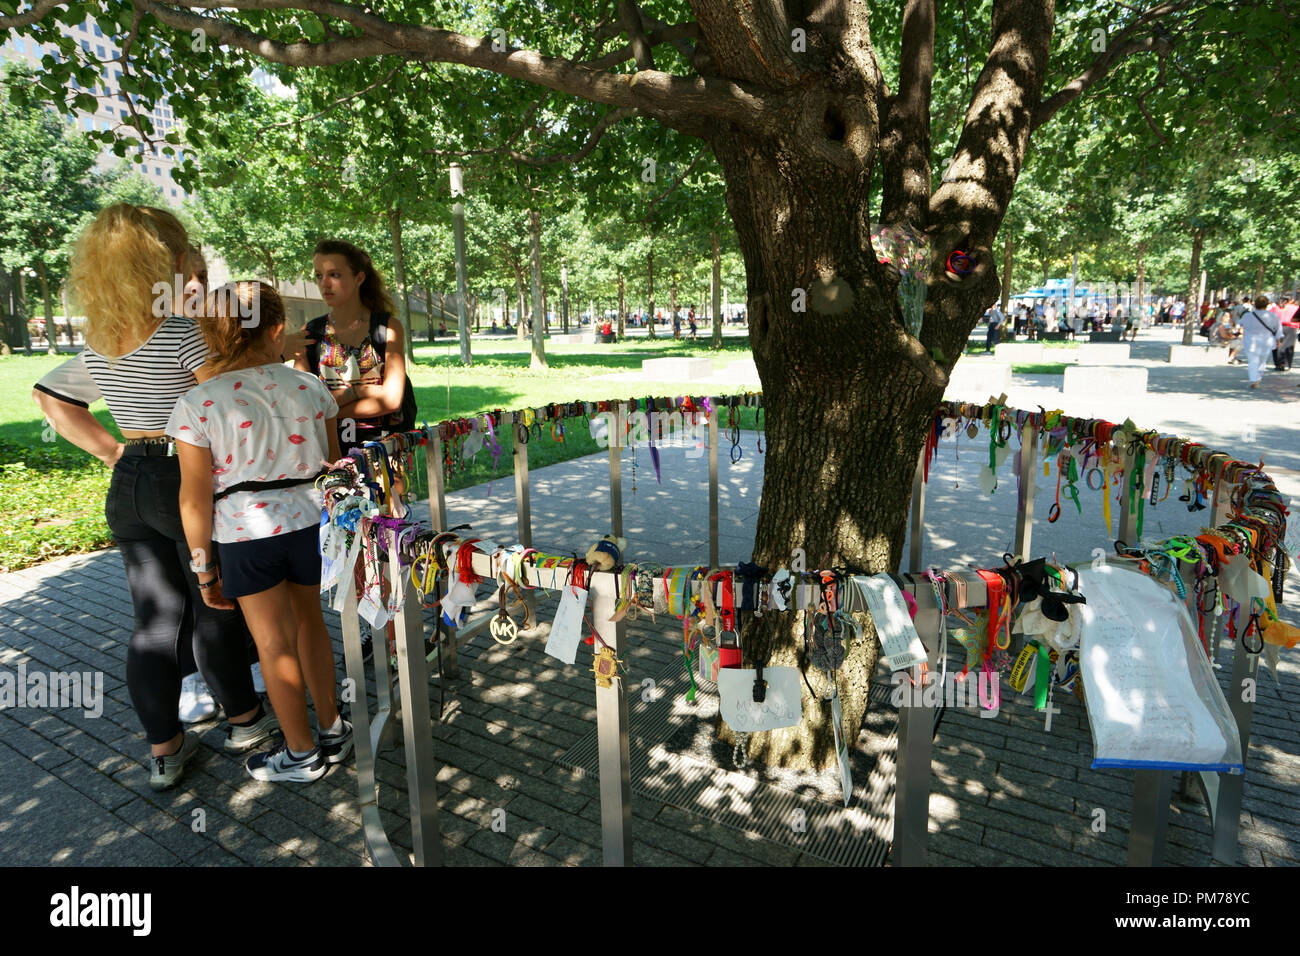 Visitors looking at the Survivor Tree from 9/11terrorist attacks at Ground Zero.National September 11 Memorial and Museum.Manhattan.New York City.USA - Stock Image